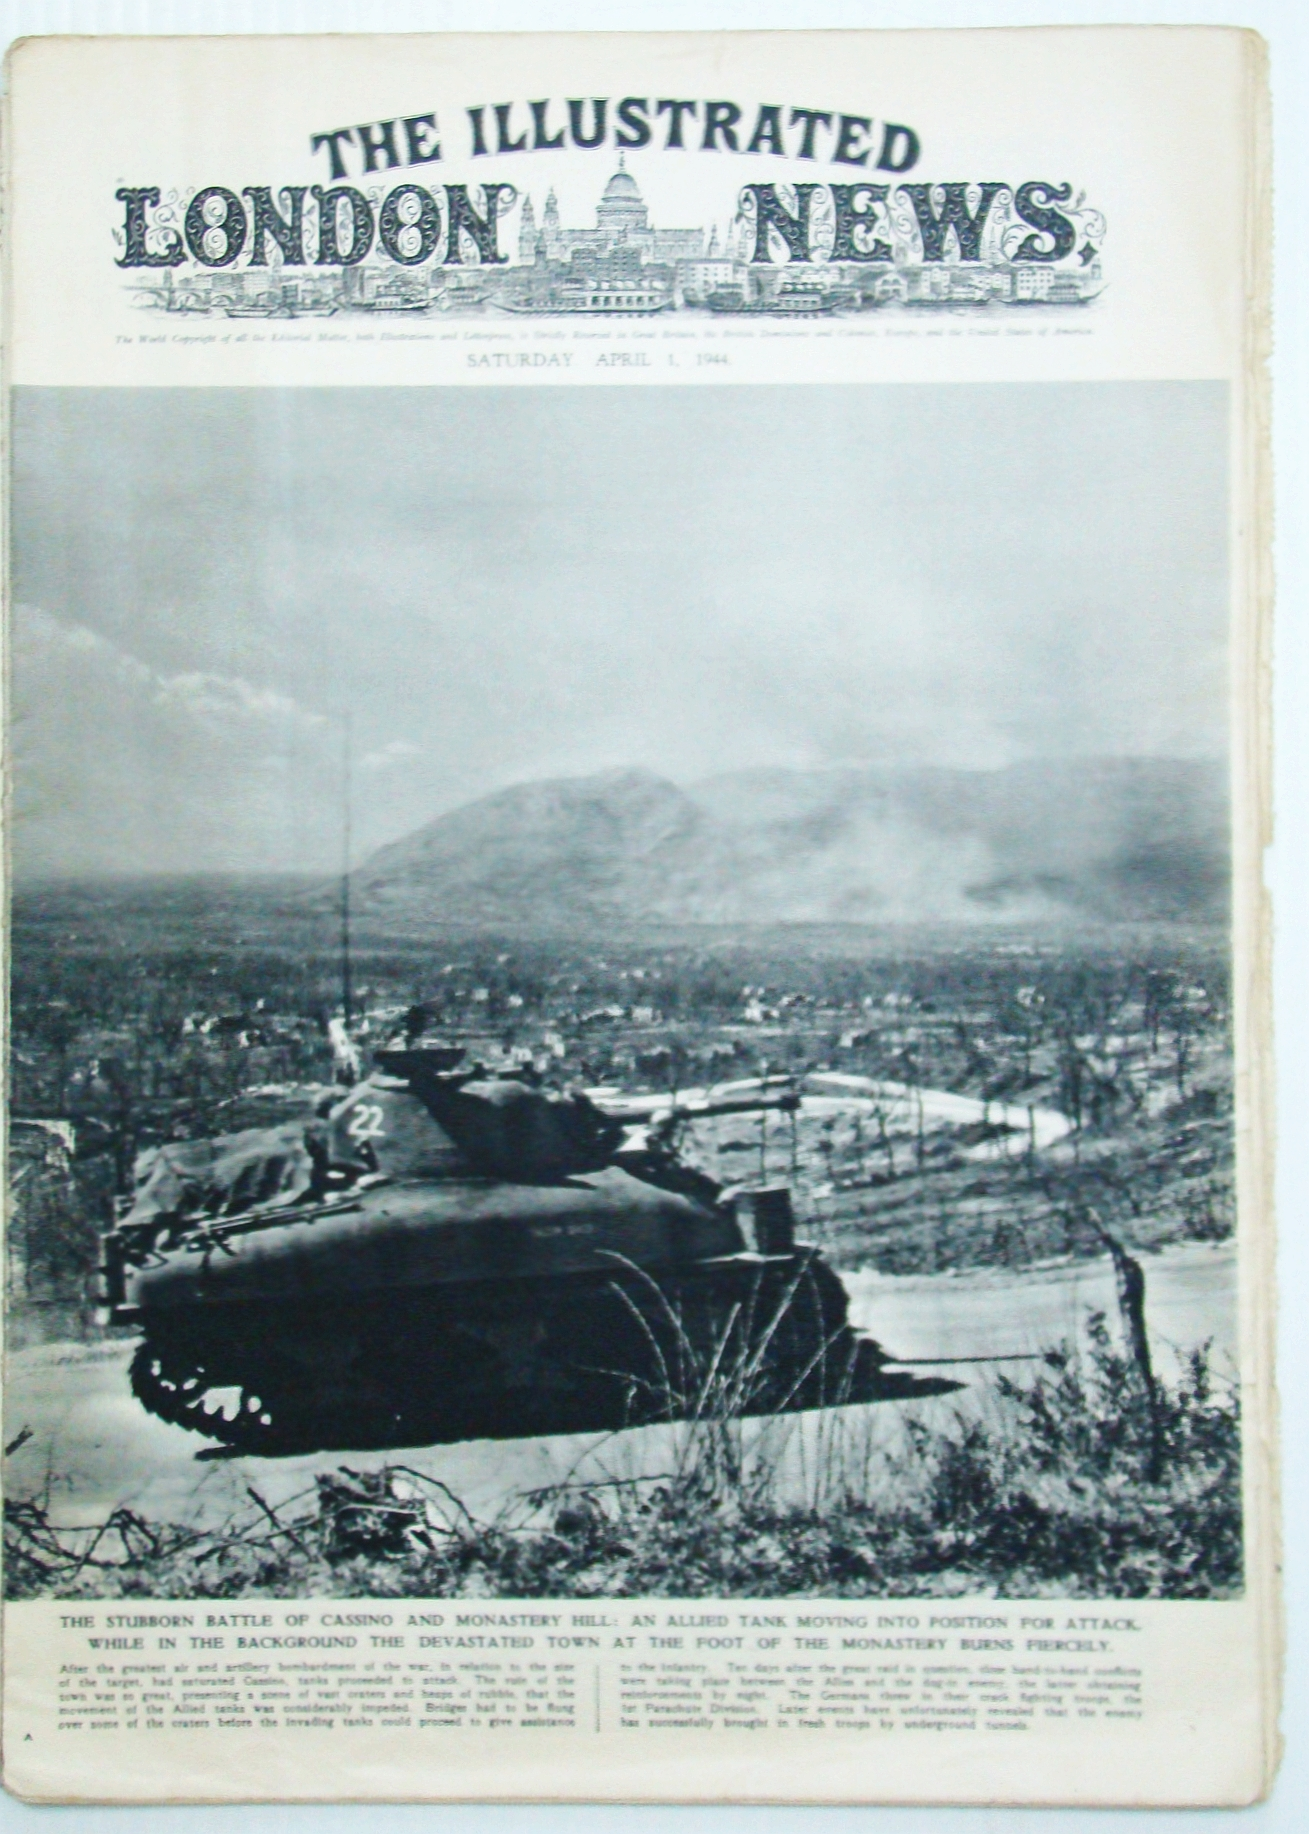 Image for The Illustrated London News (ILN), April (Apr.) 1, 1944 - The Battle of Cassino / The Battle of Berlin